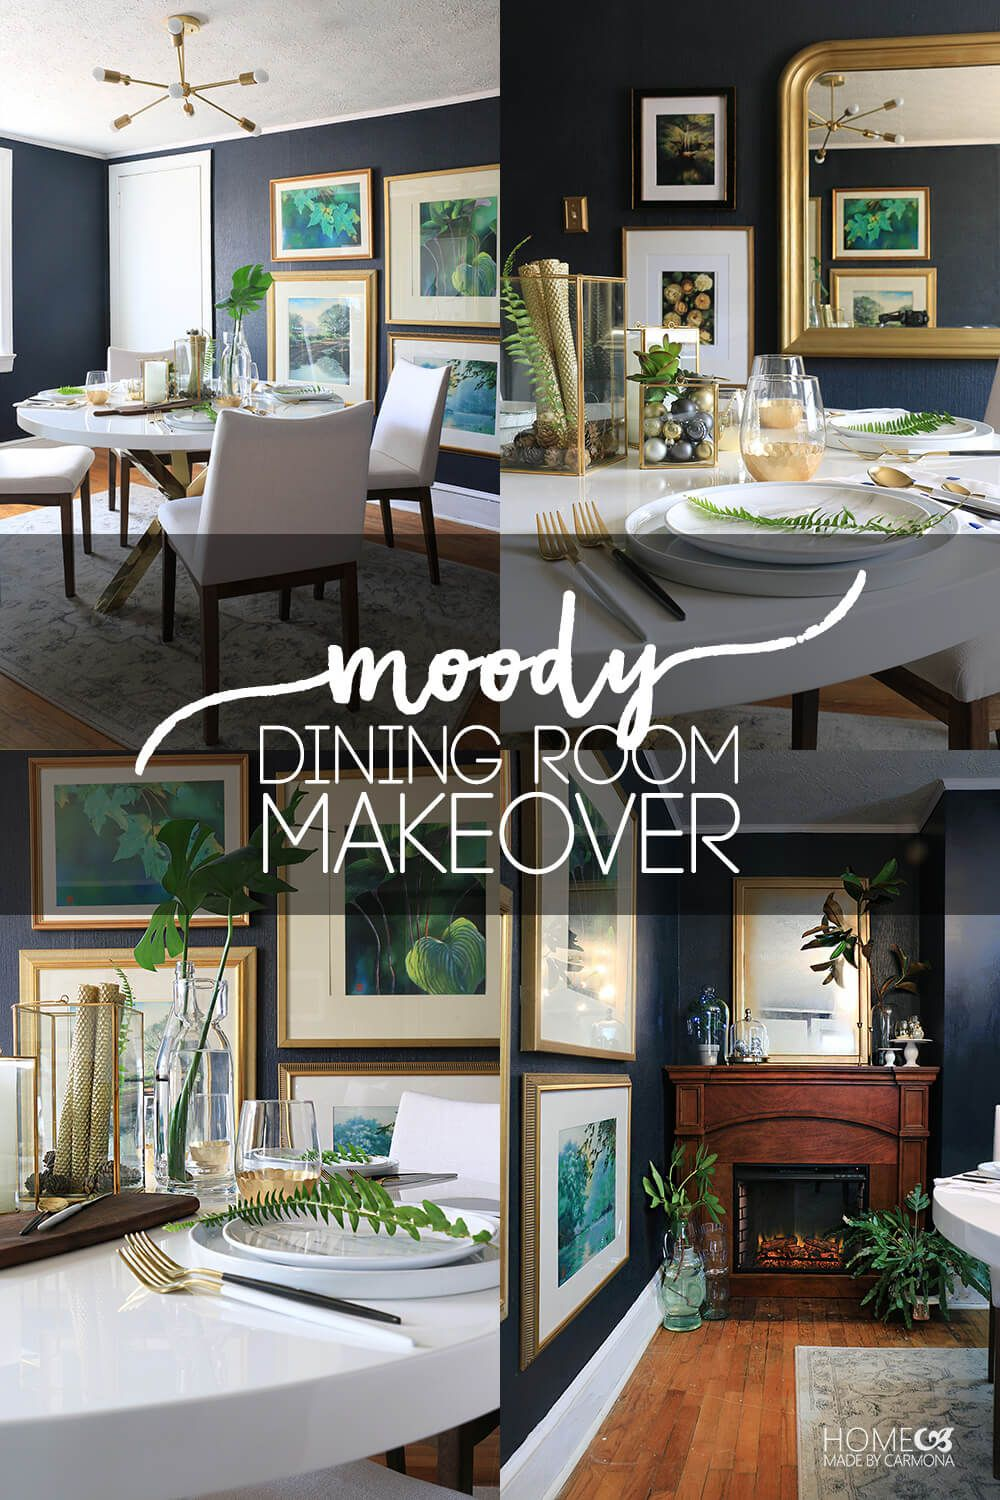 Dining Room Makeover Custom Moody Dining Room Makeover  Dark Walls Greenery And Funky Junk Inspiration Design